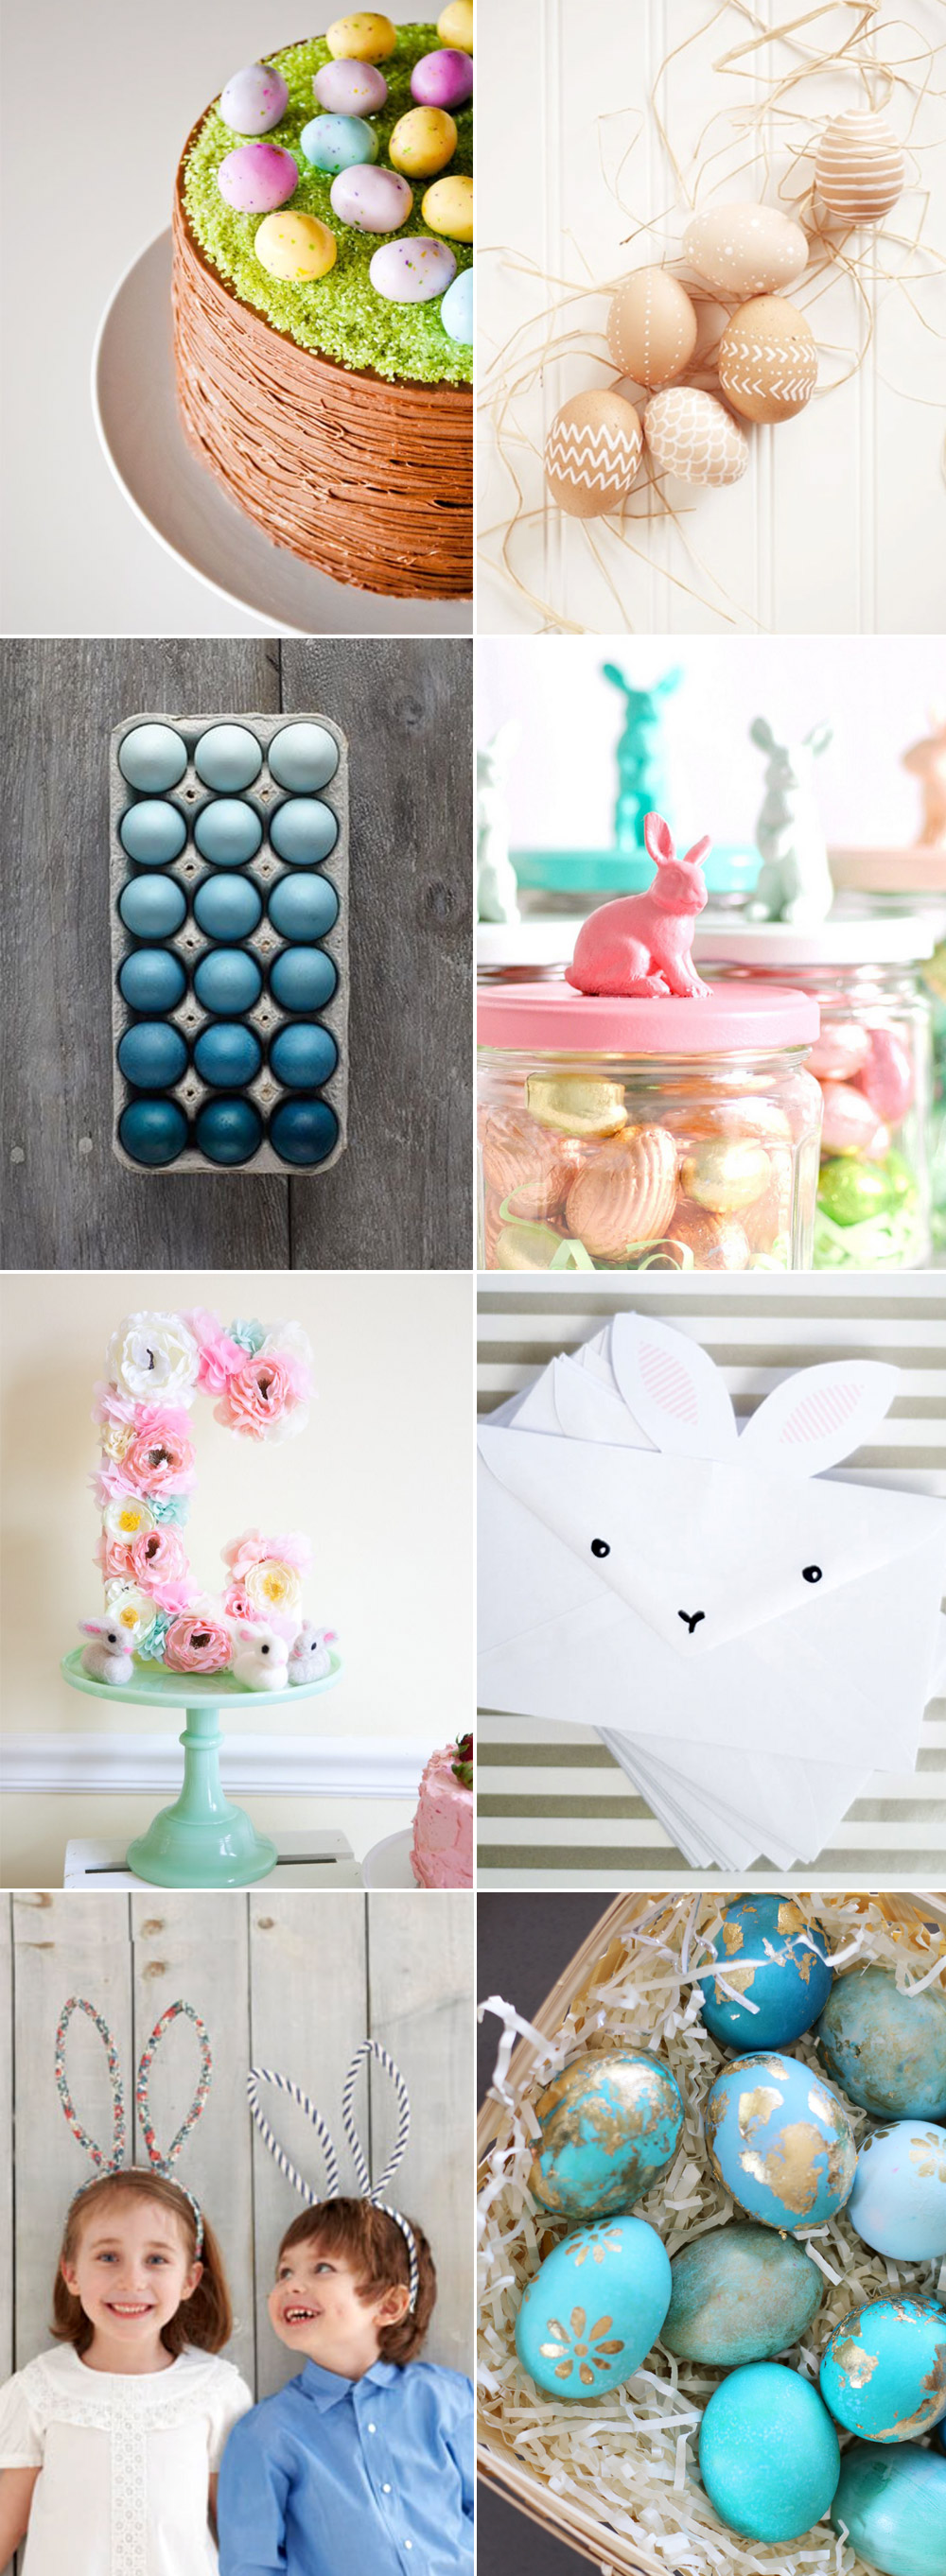 Favorite Holiday Easter Ideas | PepperDesignBlog.com